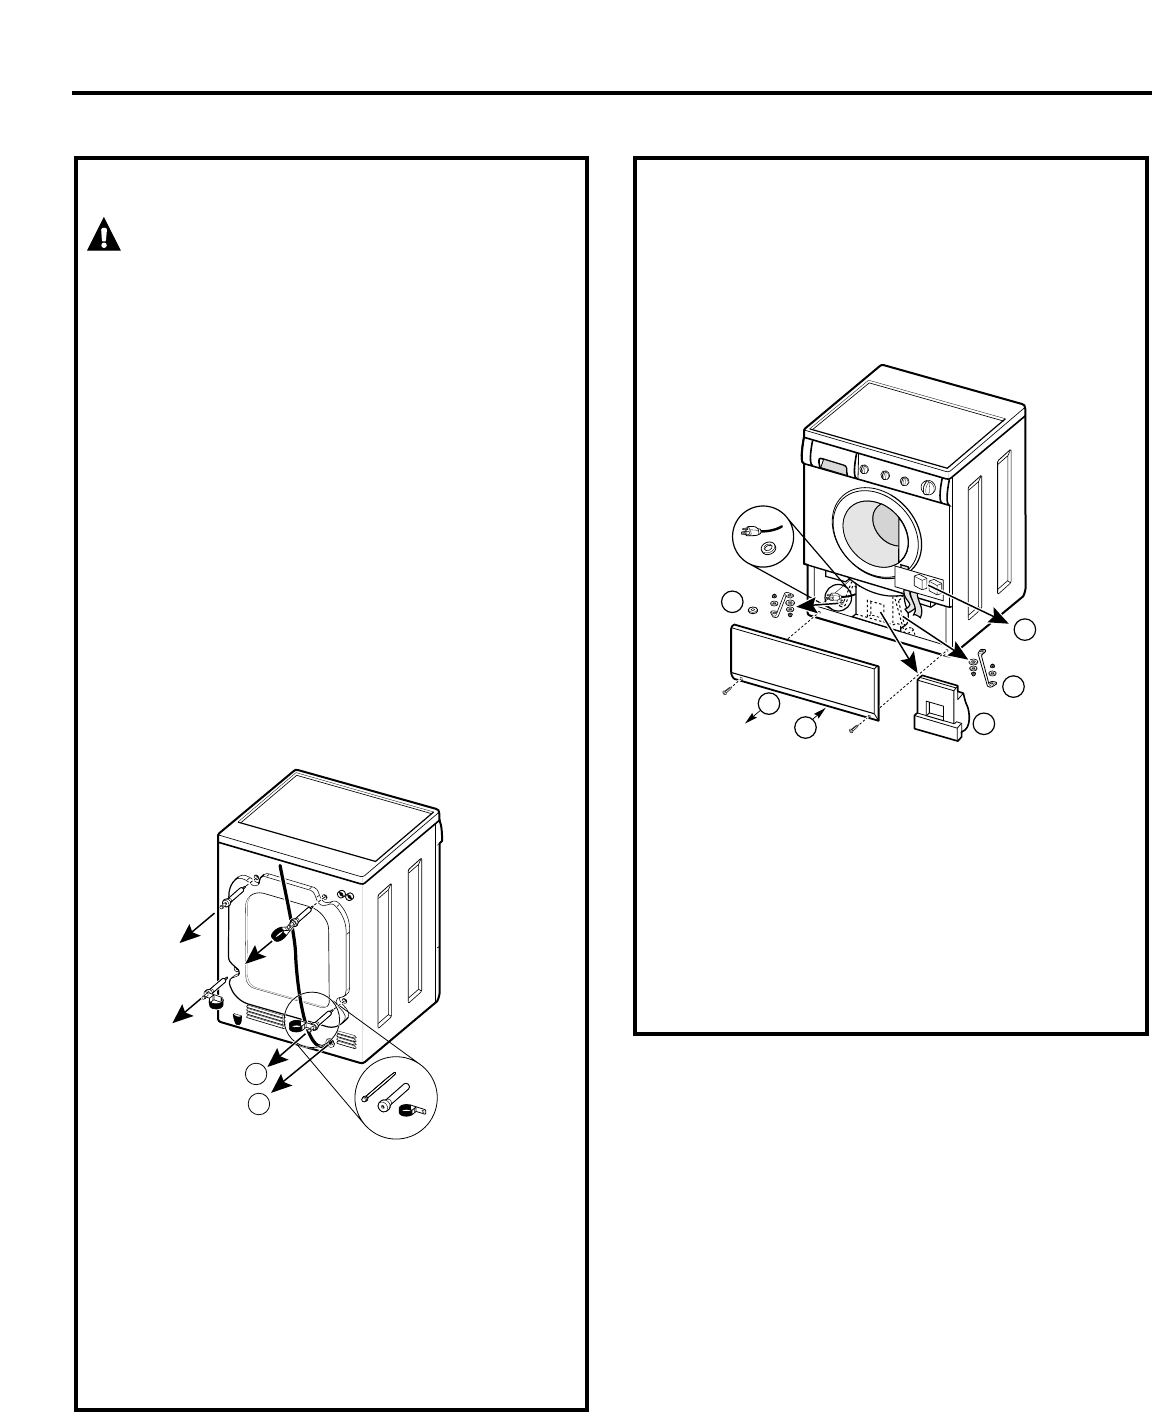 9. Remove the large Styrofoam block located under the